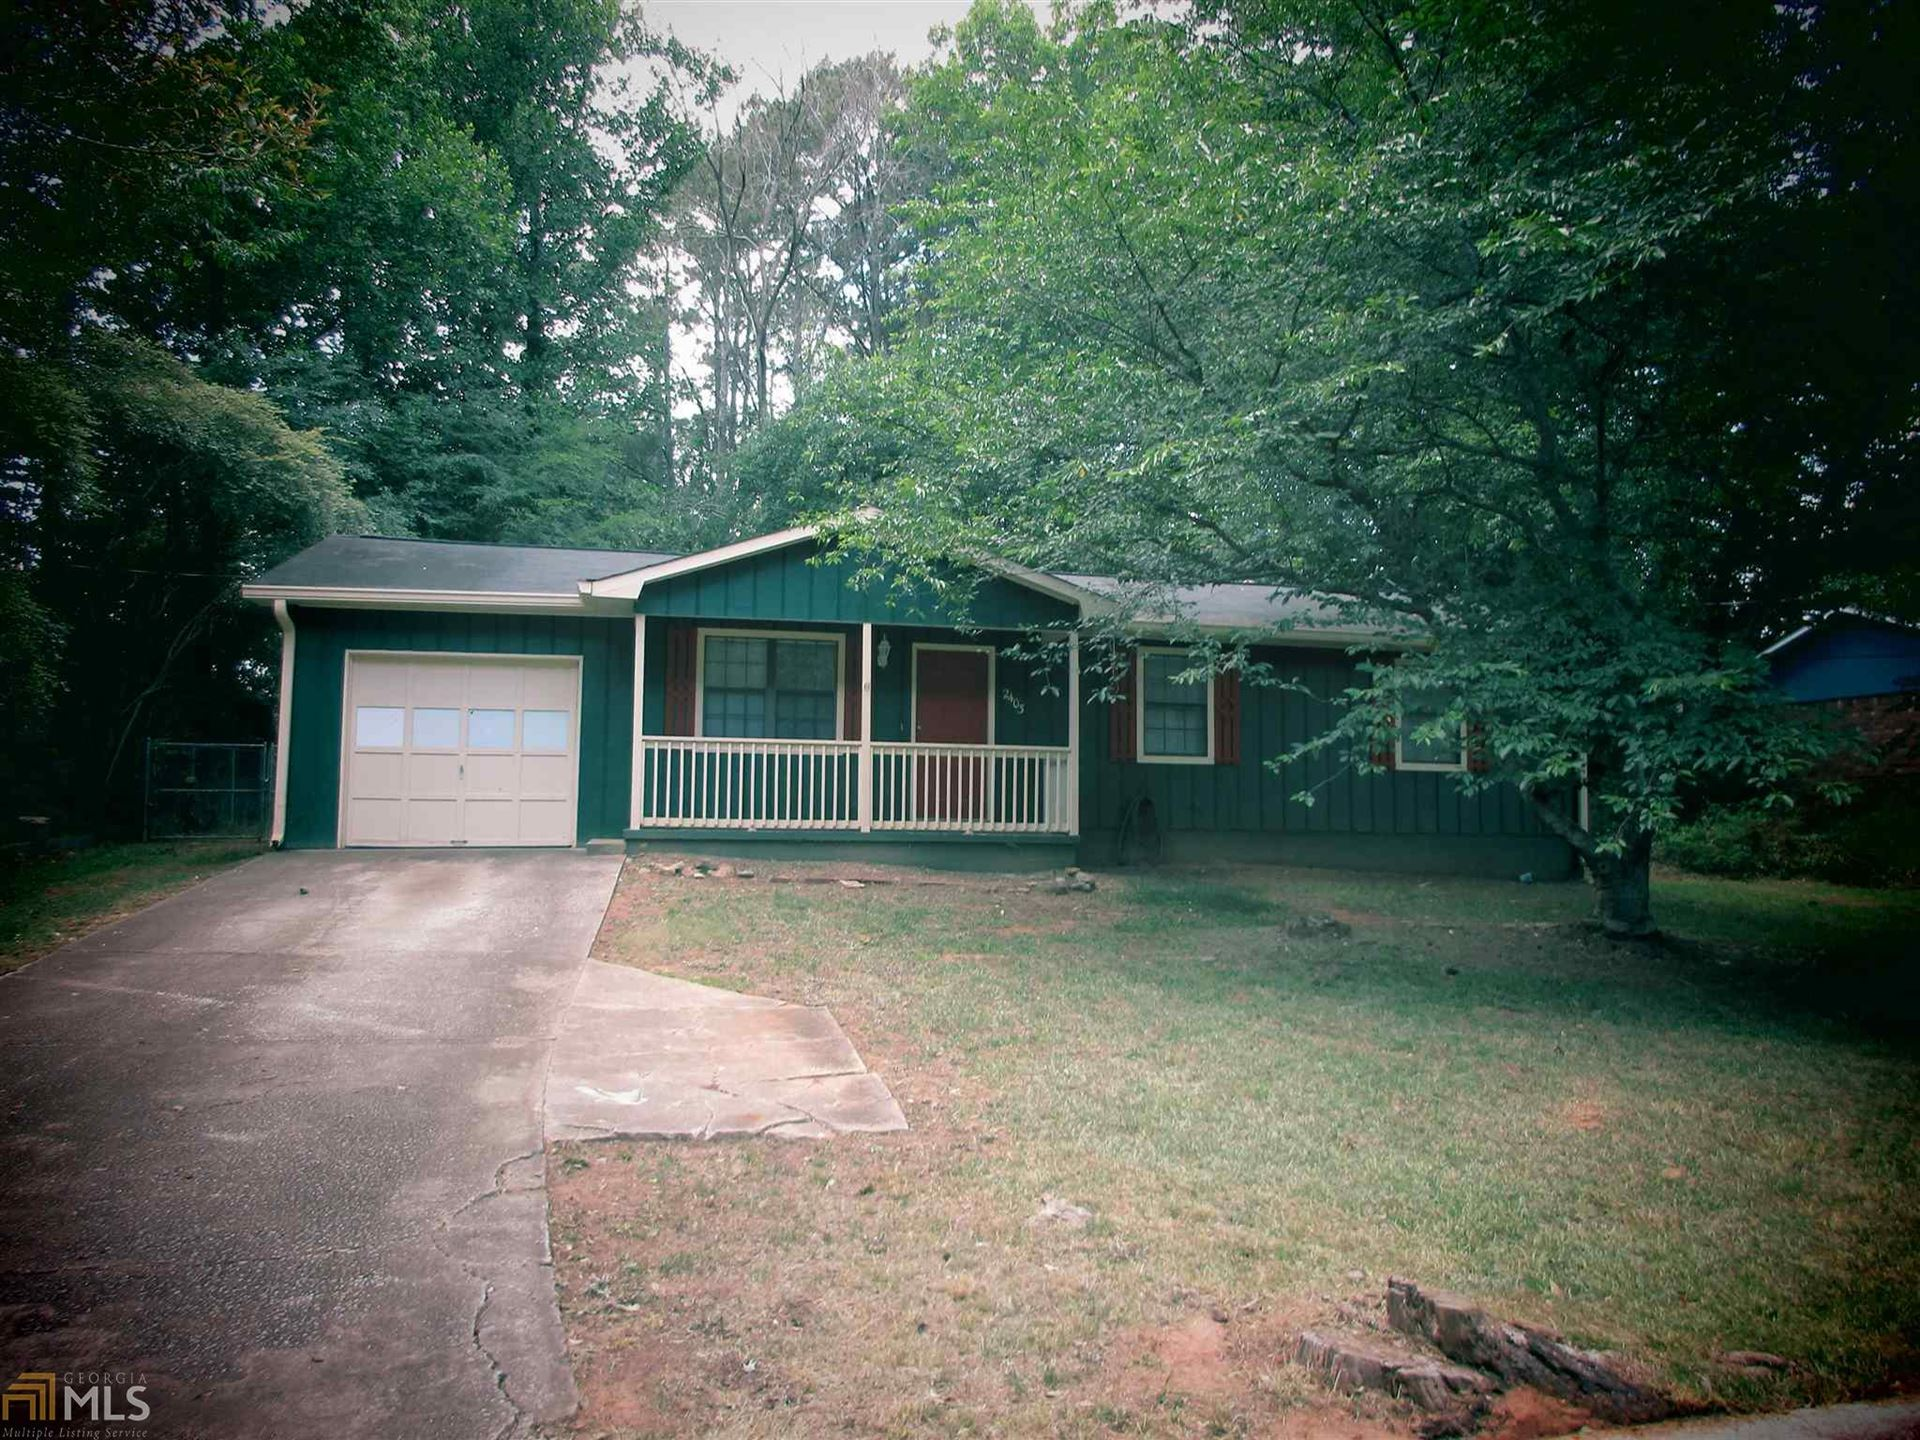 2403 Rodgers Dr, Conyers, GA 30094 - #: 8836419